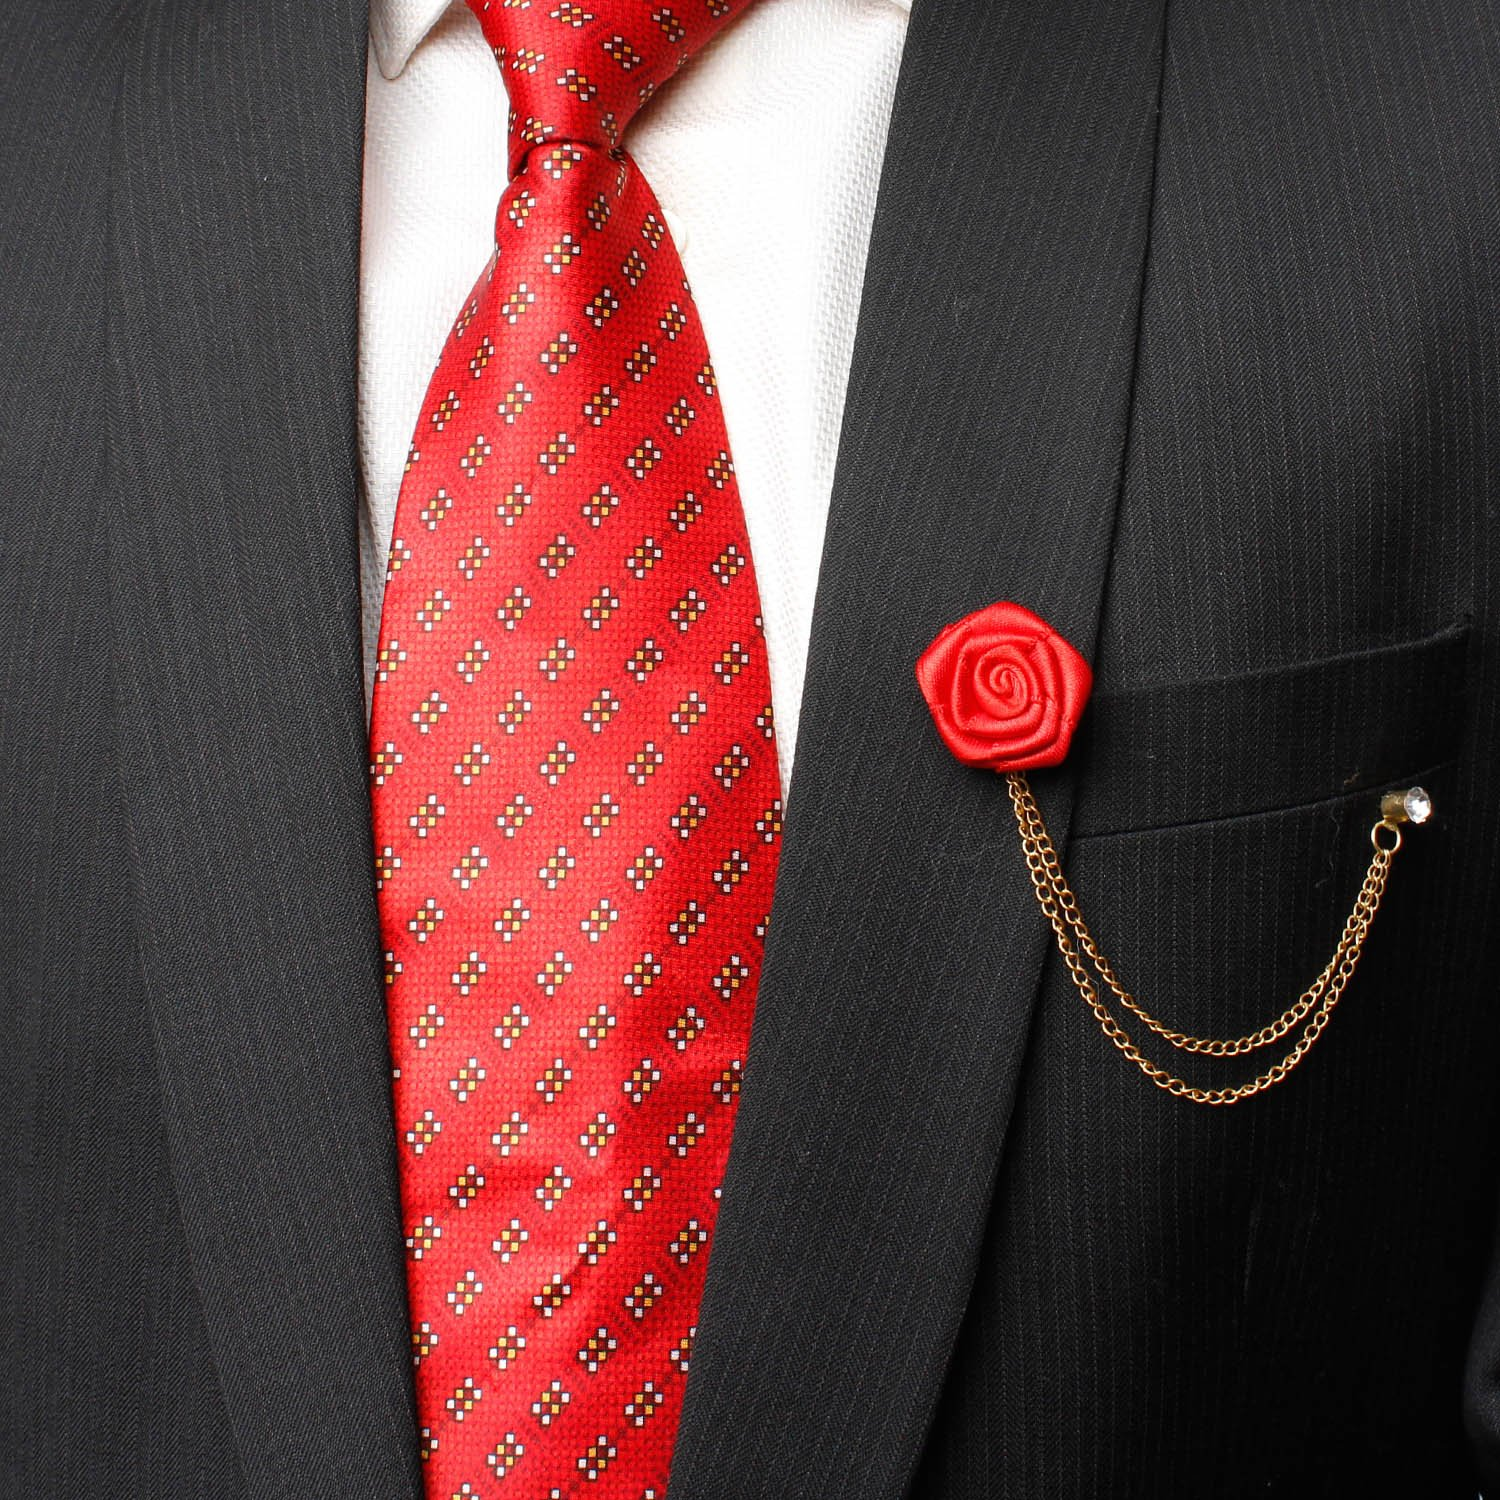 latest fashion men birdhichand their brooch for with img redefines statement suit